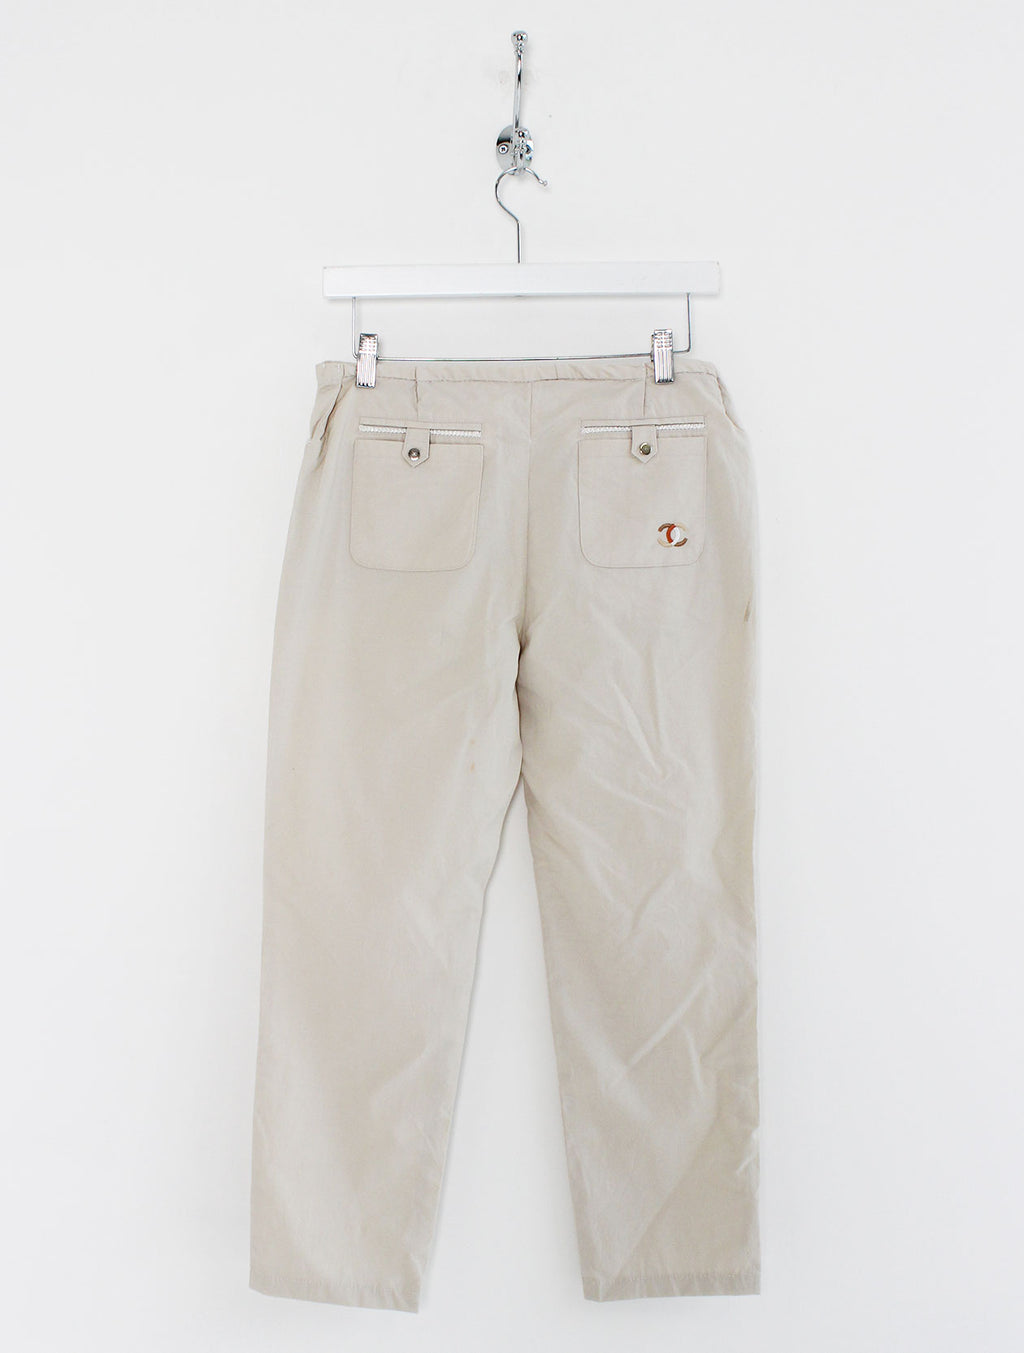 "Women's Chanel Trousers (28"")"